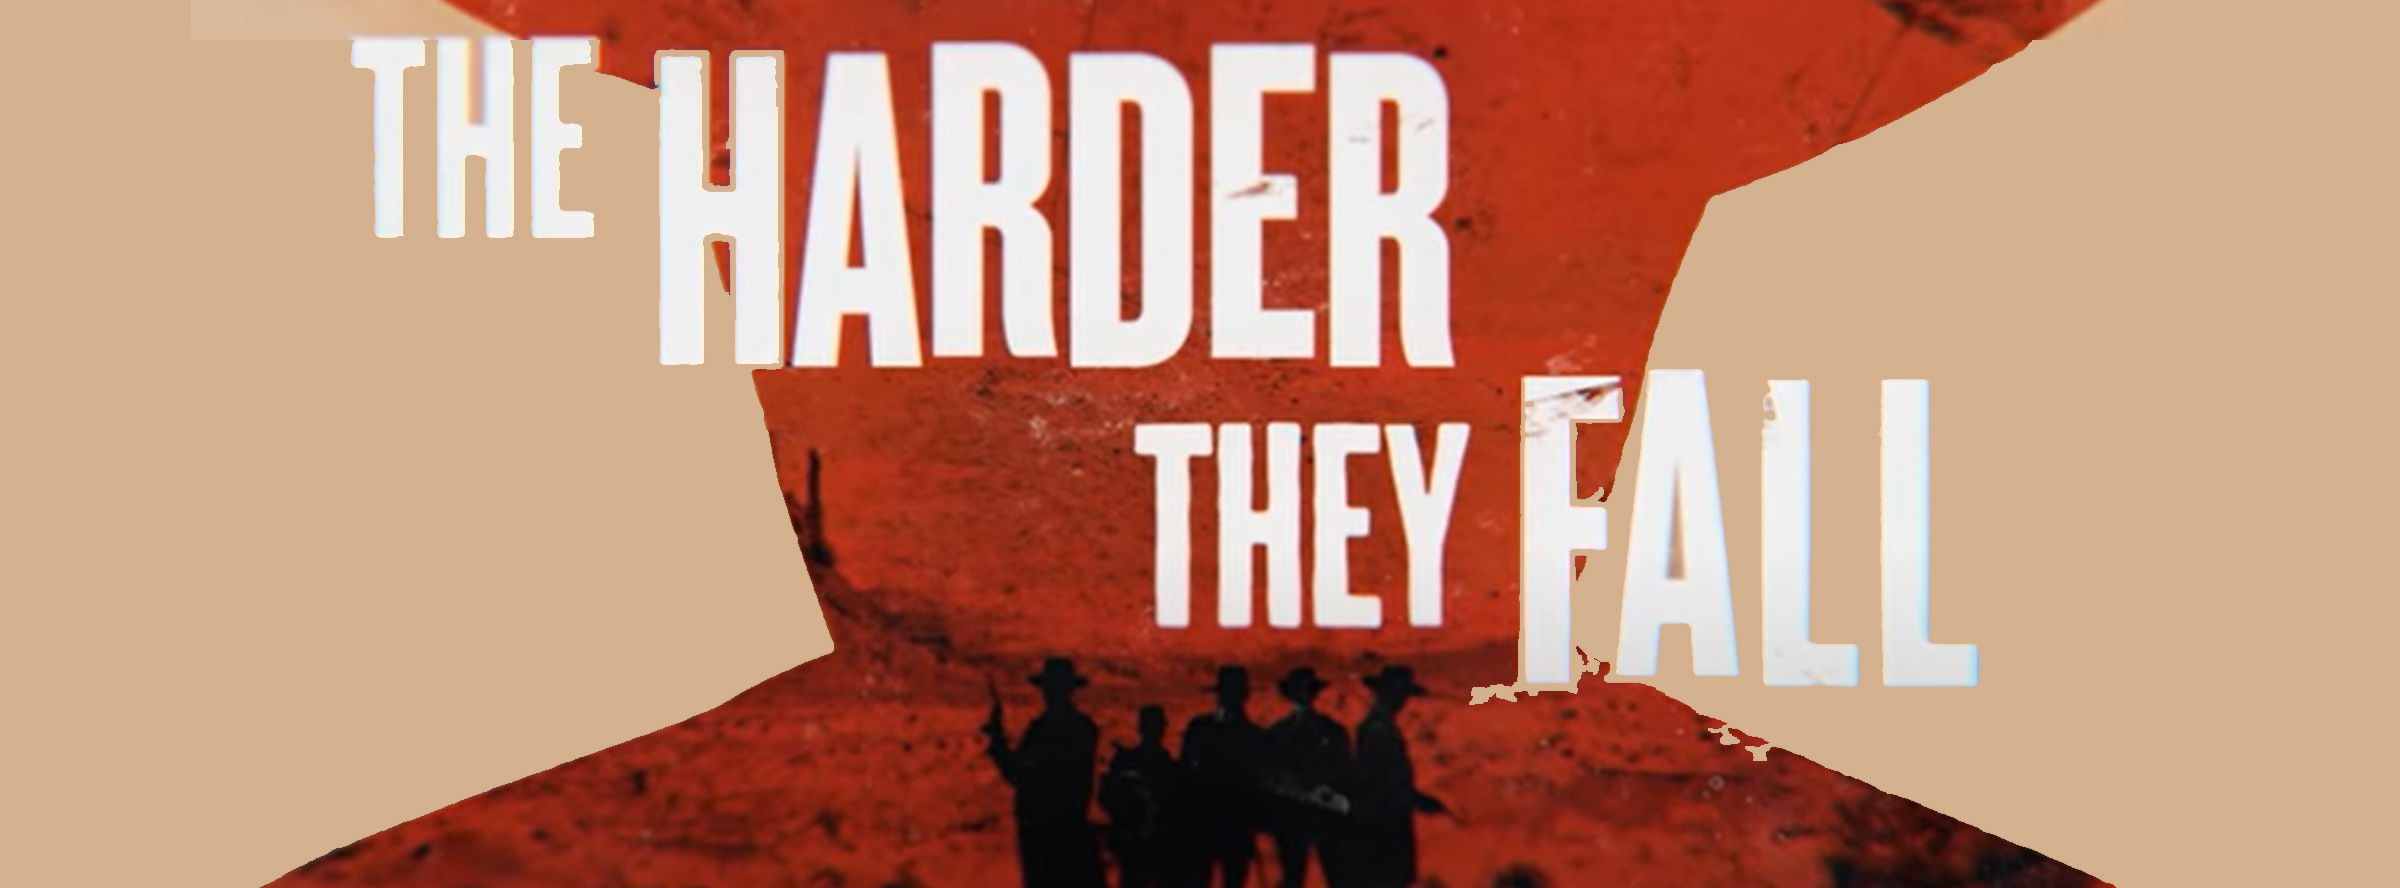 Slider Image for The Harder They Fall